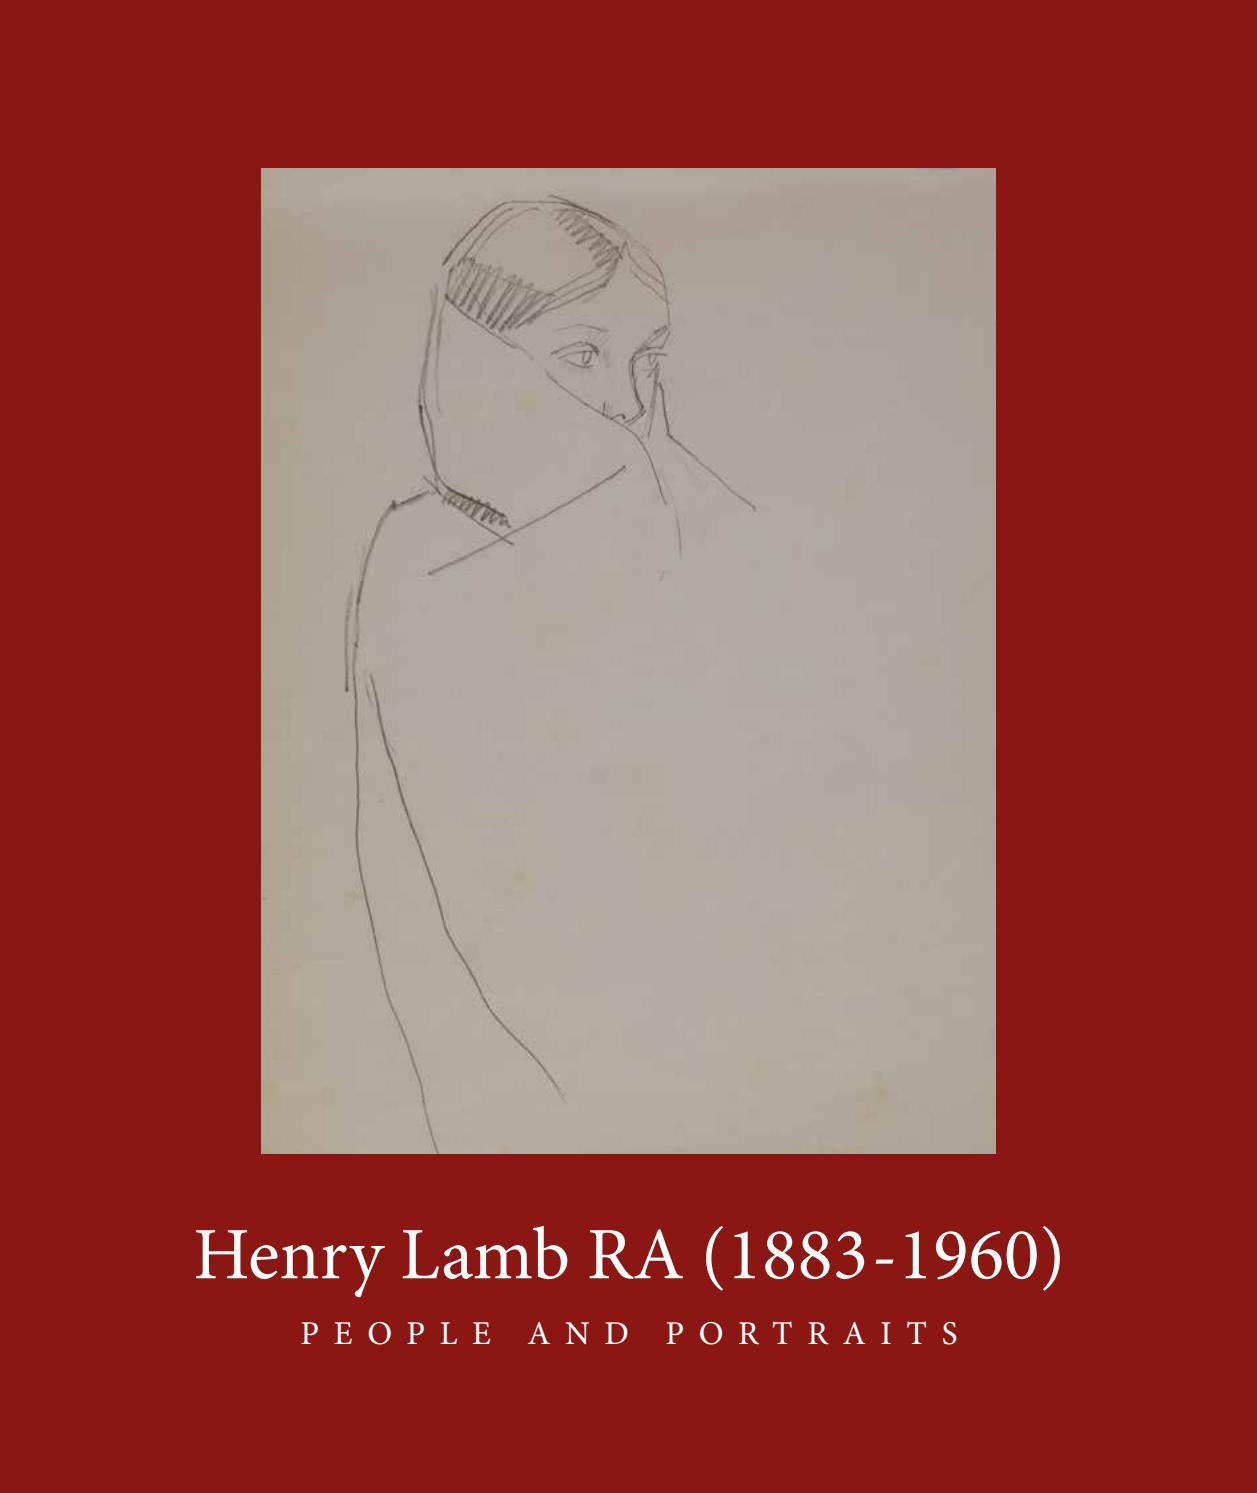 Henry lamb people exhibition catalogue by messums wiltshire issuu